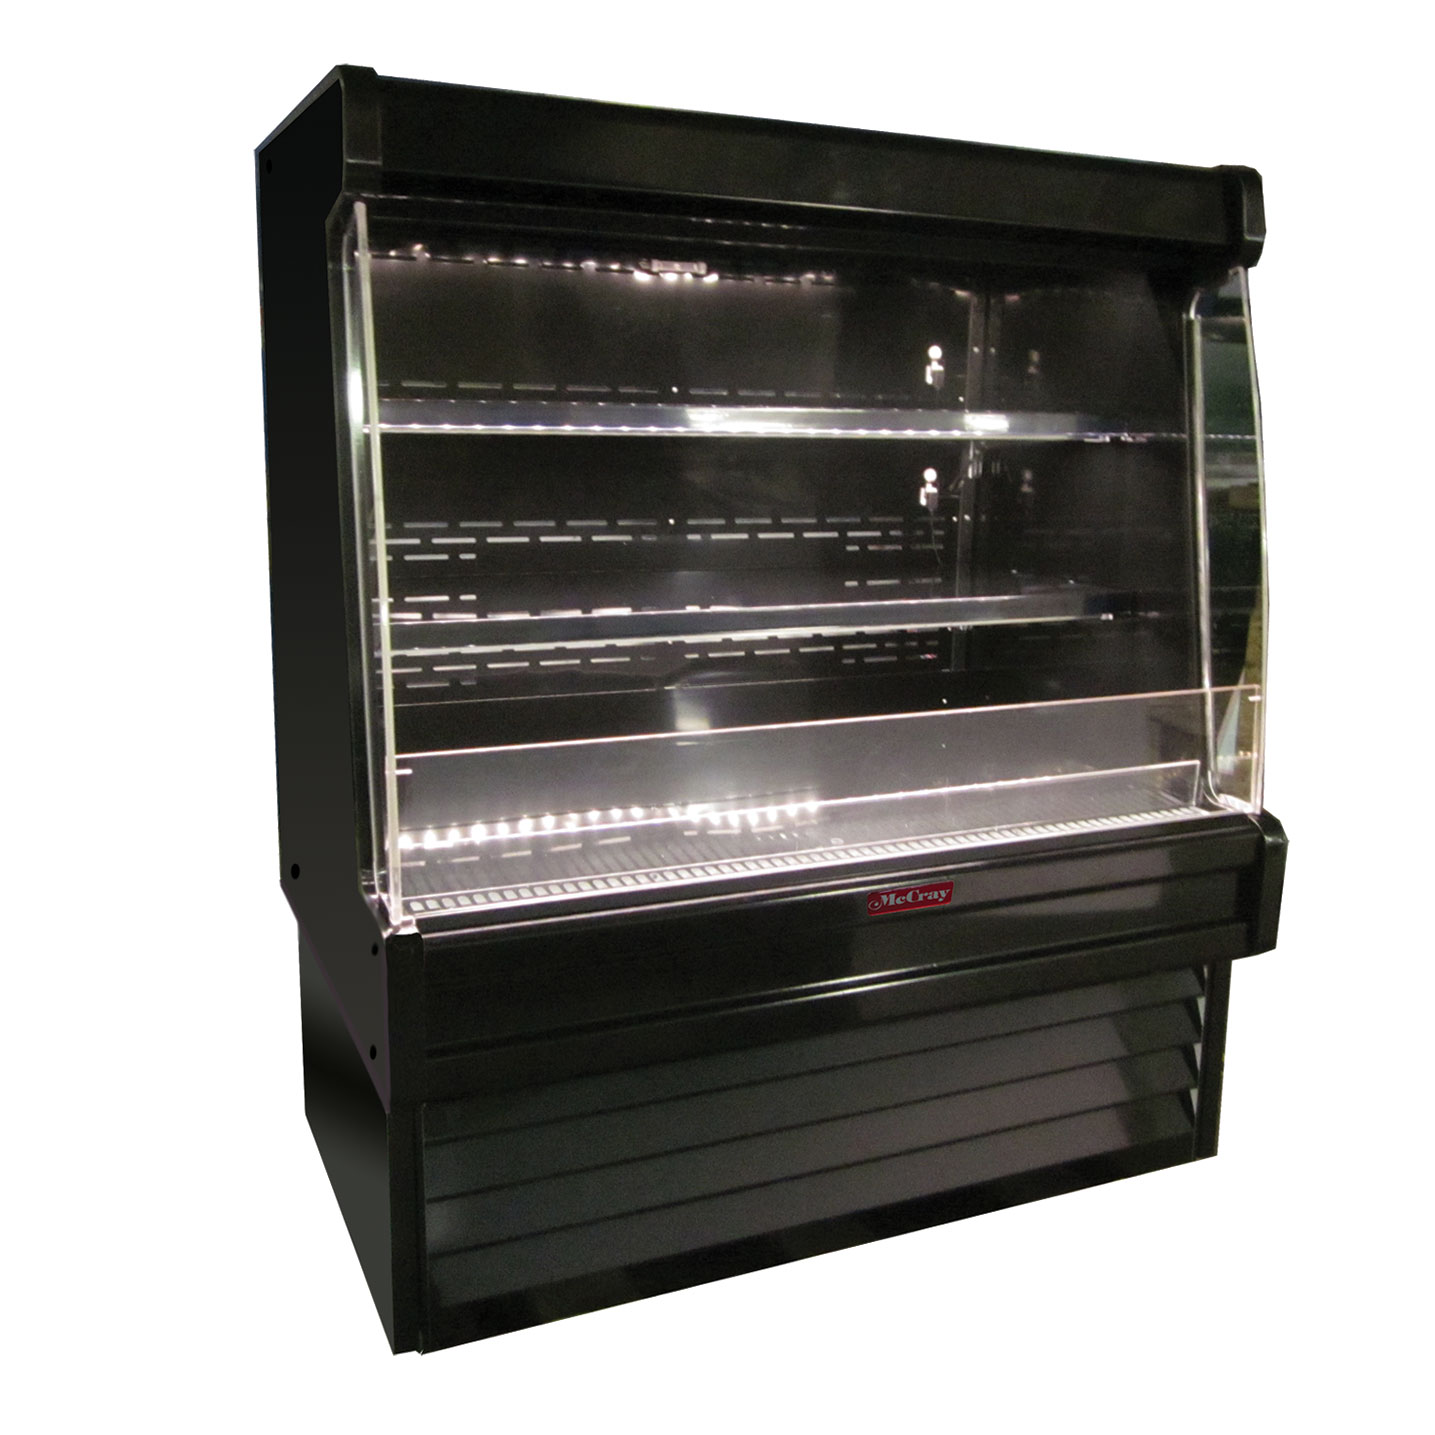 Howard-McCray R-OP35E-4L-S-LED display case, produce